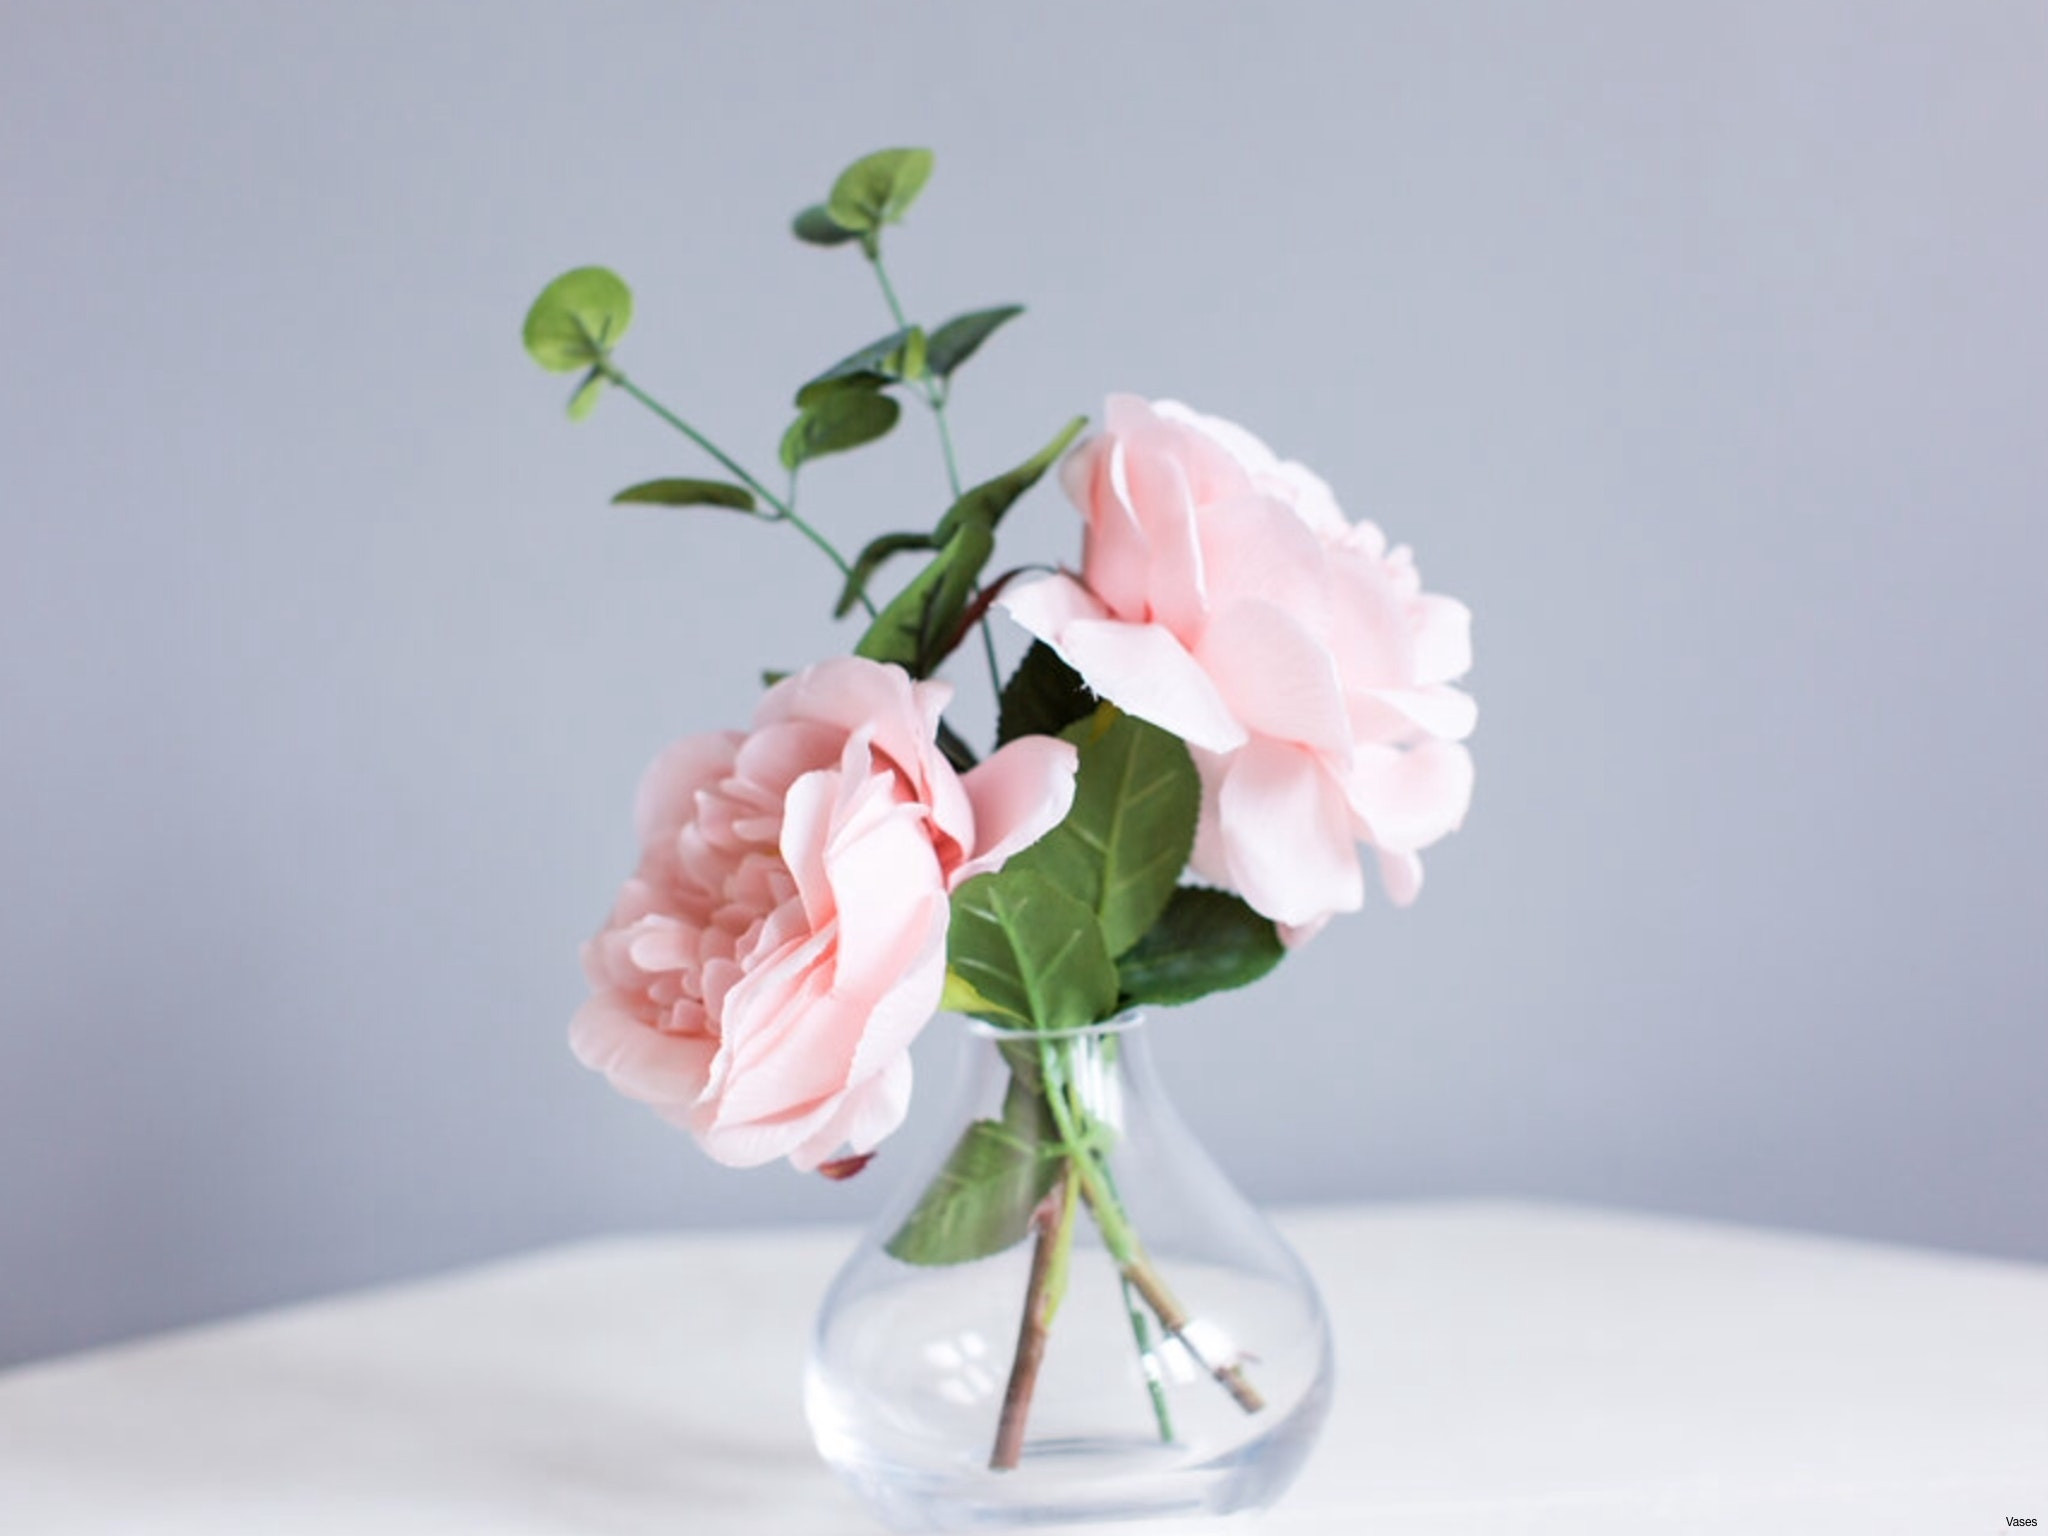 different types of vases of image of types of vases vases artificial plants collection with types of vases image h vases bud vase flower arrangements i 0d for inspiration design of